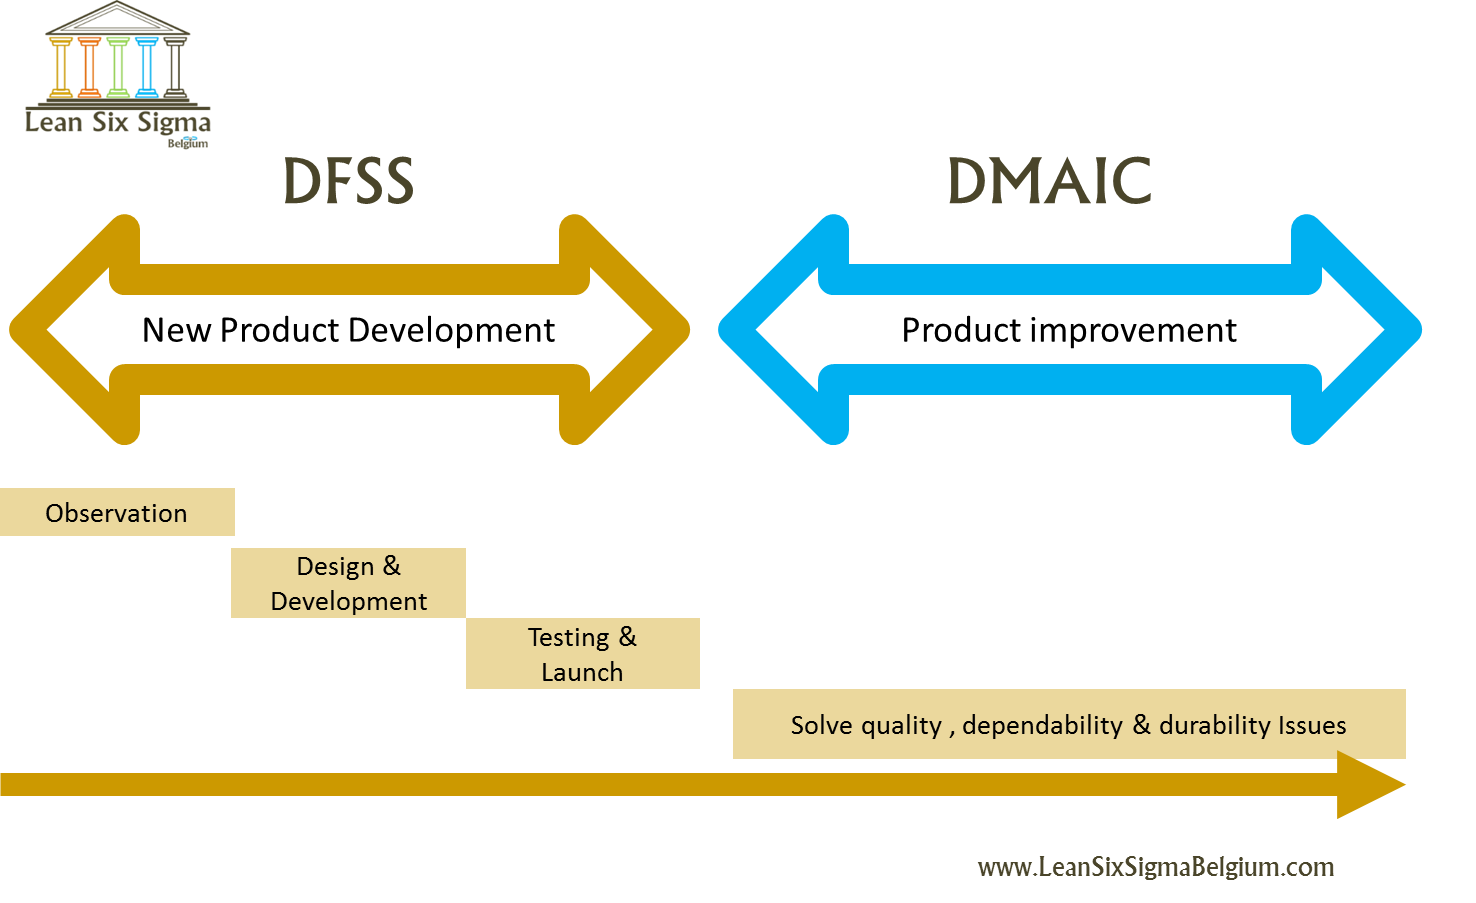 Design For Six Sigma Design Dfss Lean Six Sigma Belgium on lean six sigma dmaic